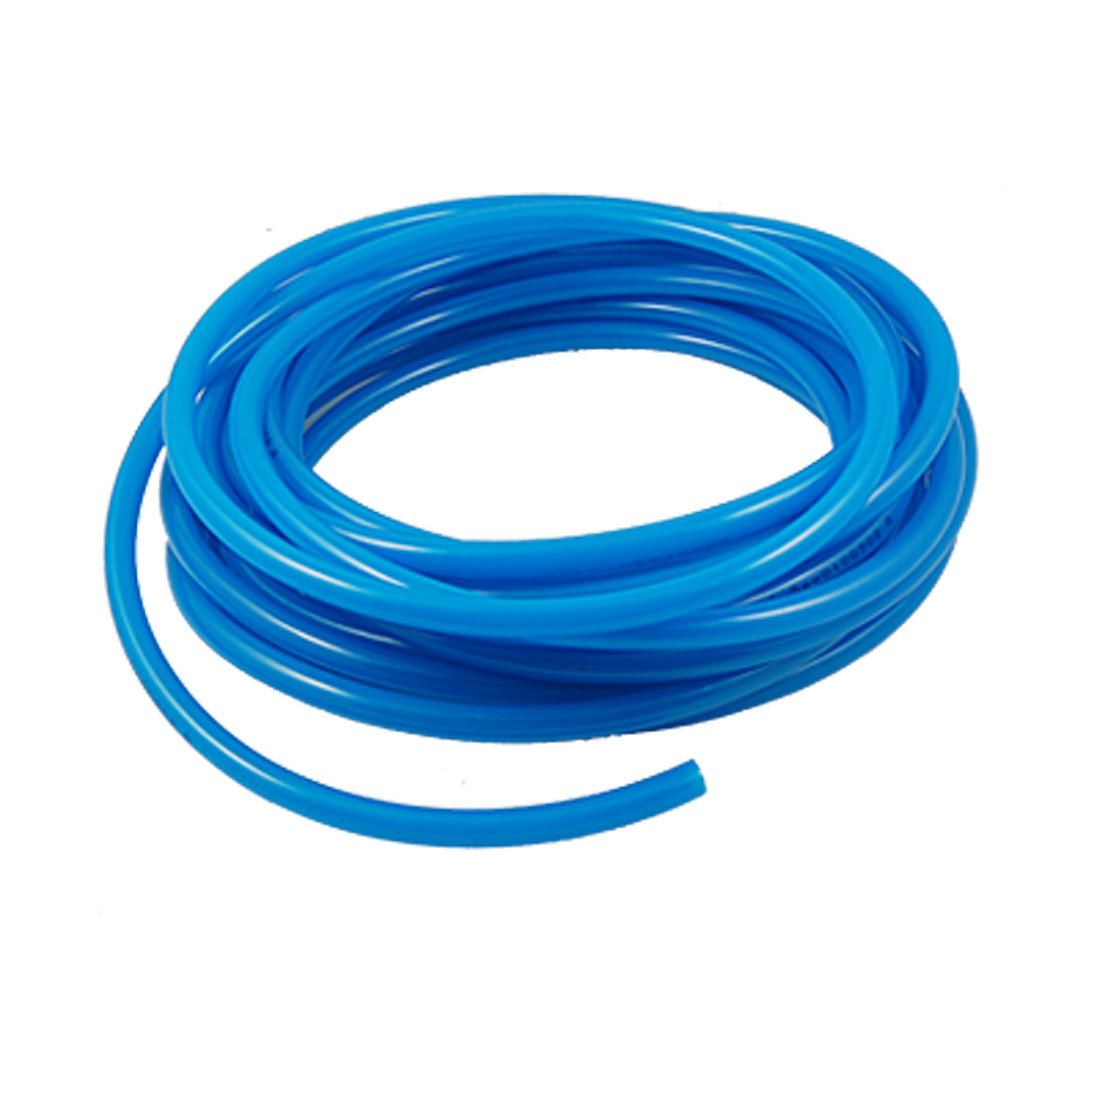 "Blue 10M 32.8Ft 25/64"" OD x 1/4"" ID Polyurethane PU Air Hose Pipe Tube"